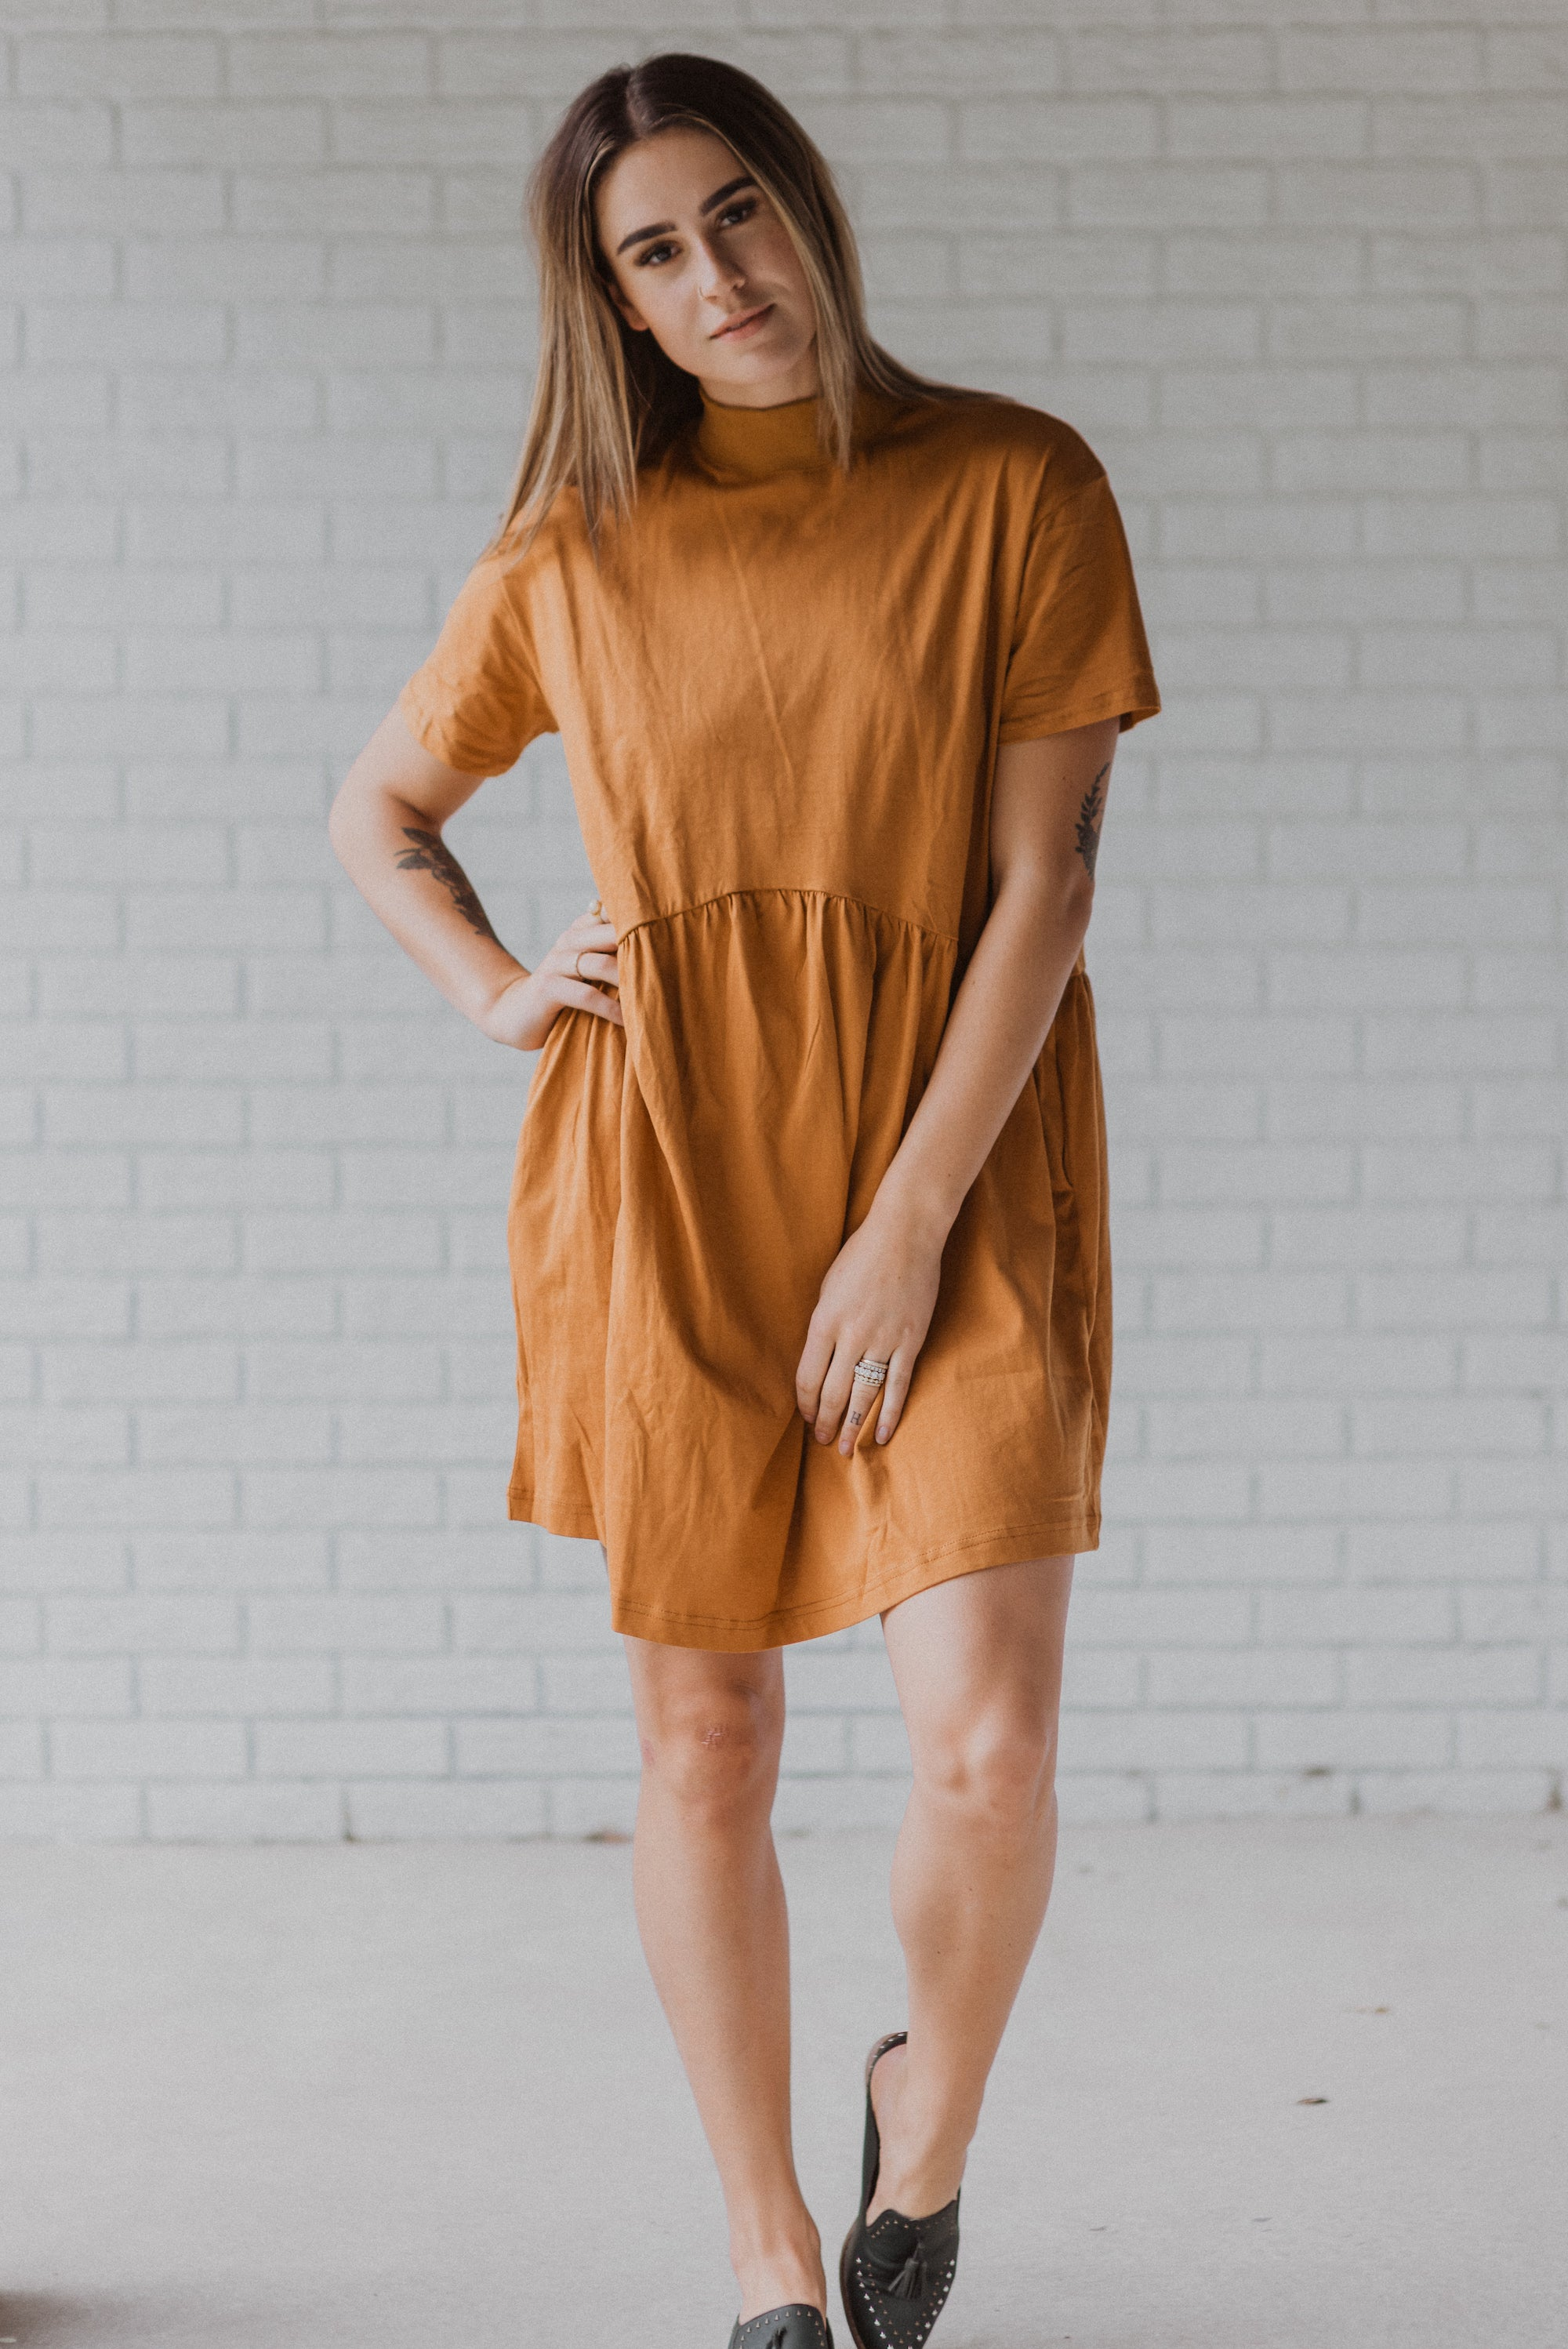 So Marnie Mock Neck Babydoll Dress in Camel